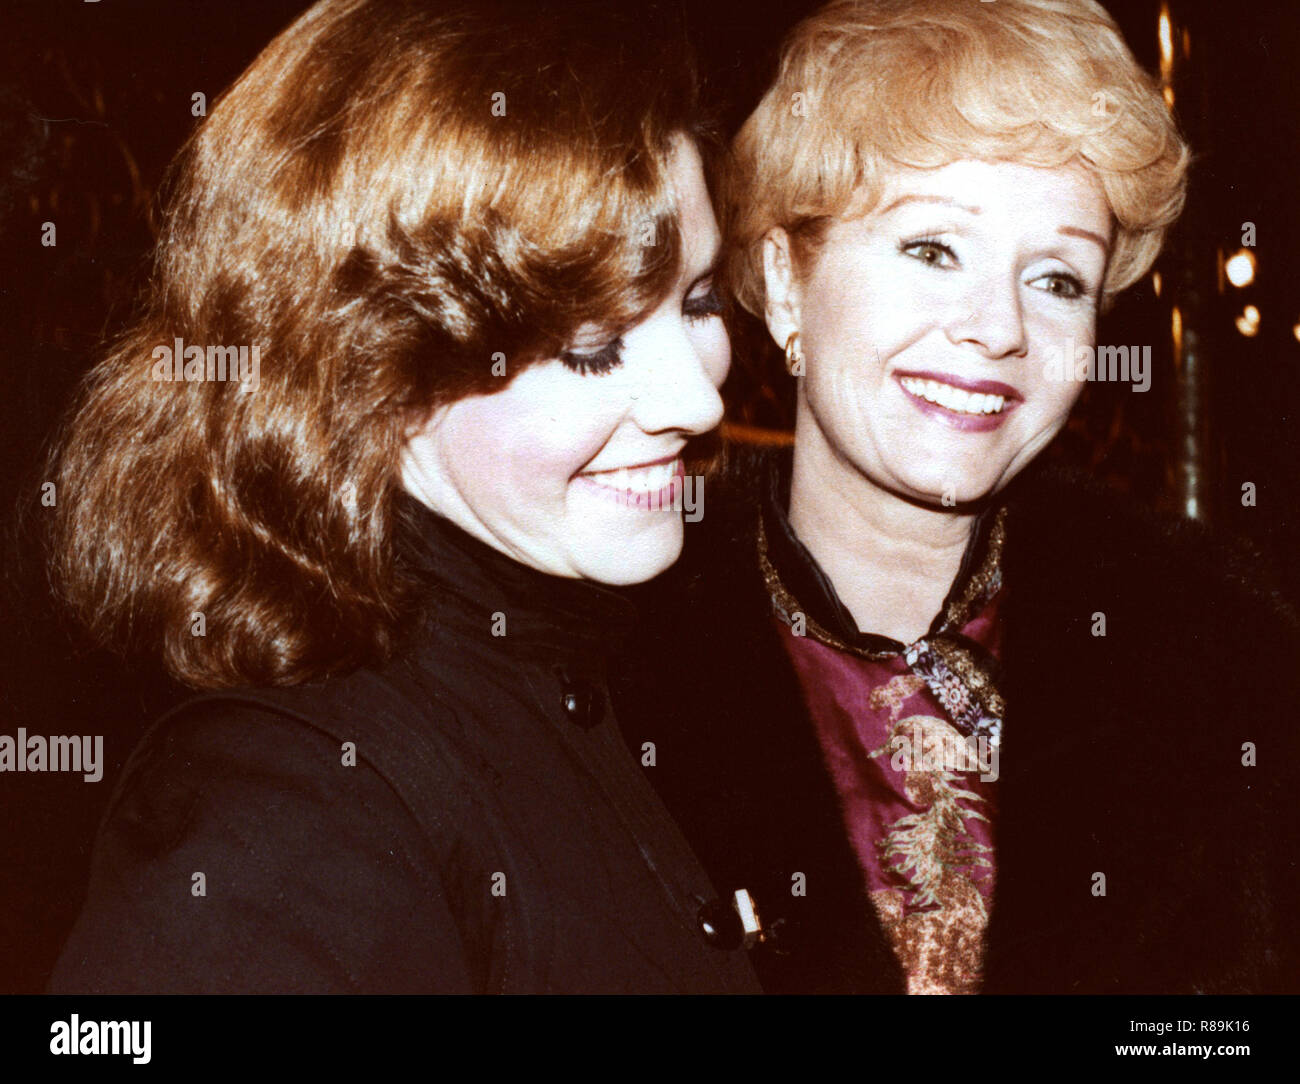 Carrie Fisher and Debbie Reynolds attend a Broadway show October 1, 1979 in New York City. Credit: Walter McBride /MediaPunch - Stock Image